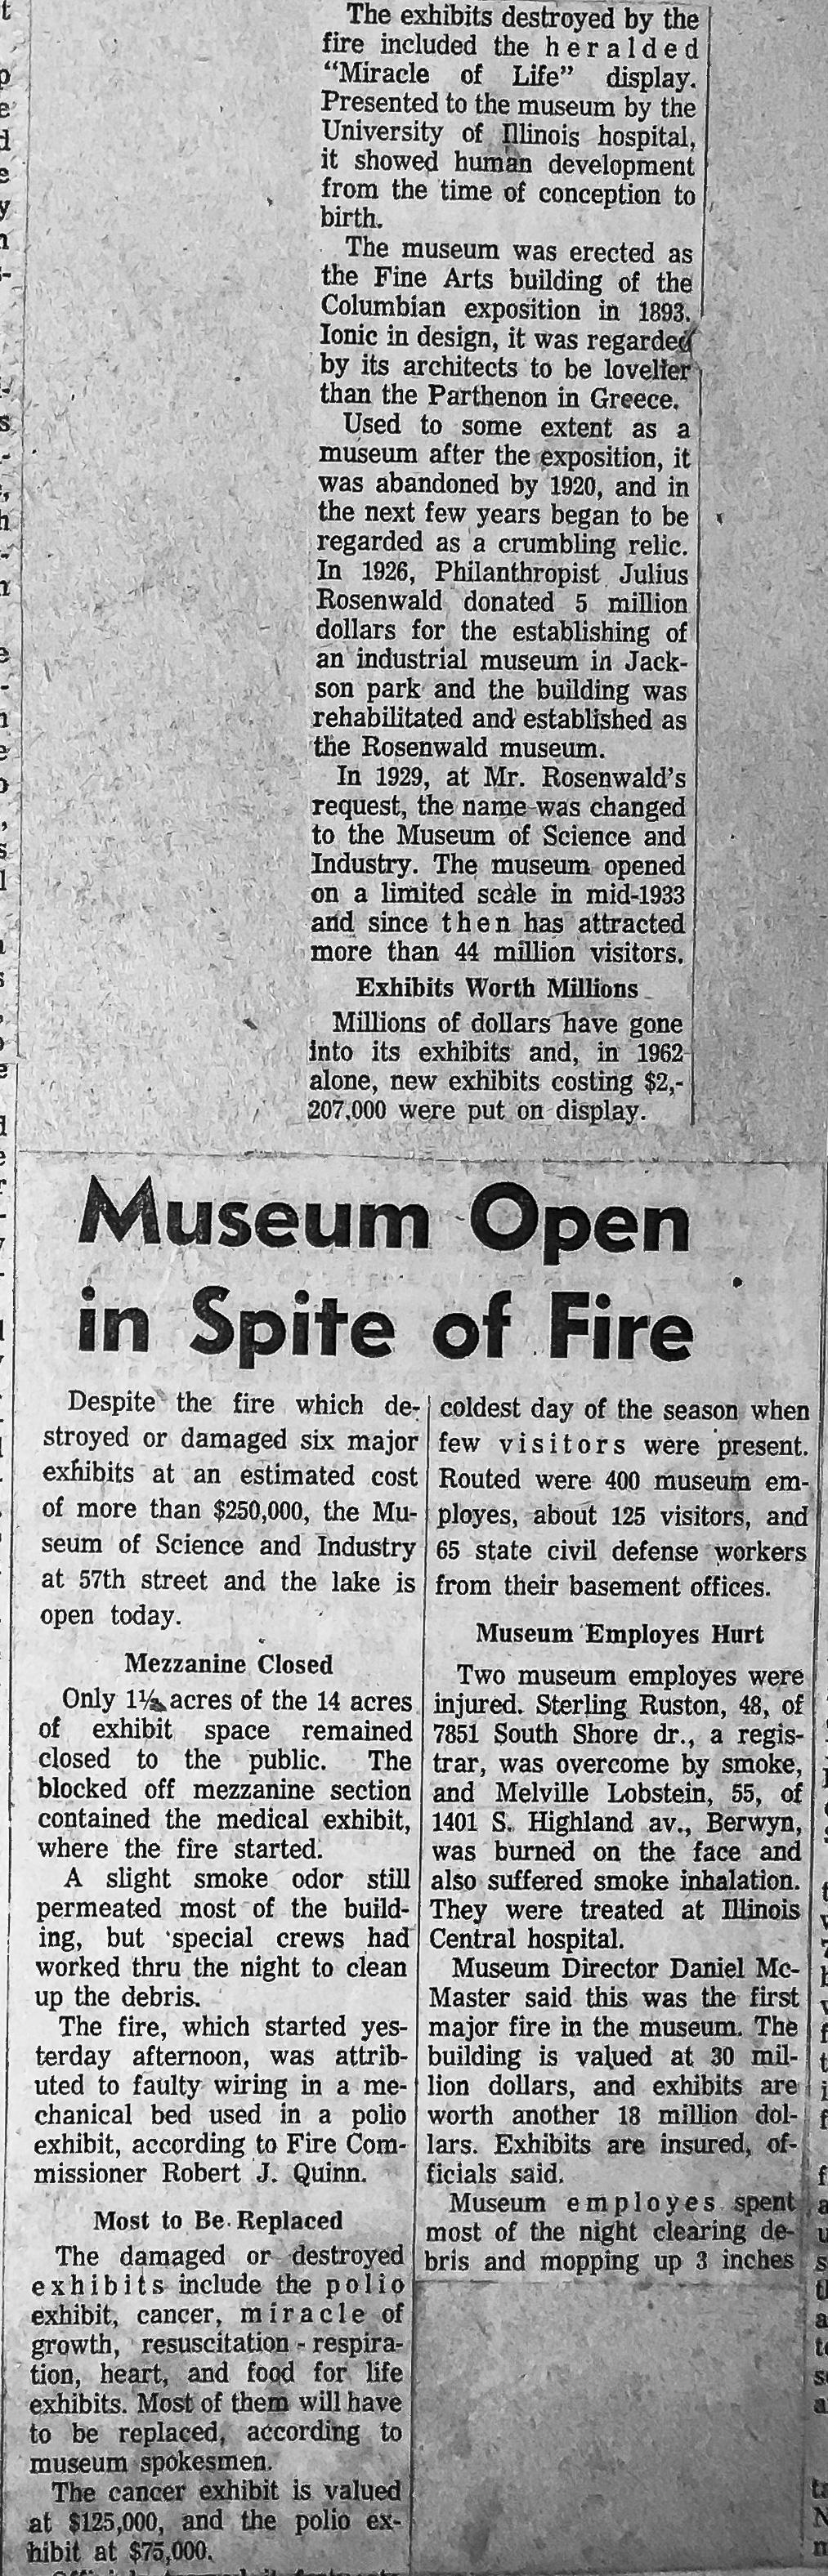 vintage news clipping of Chicago Fire Department history, a 3-11 Alarm fire at the Museum of Science and Industry in 1963